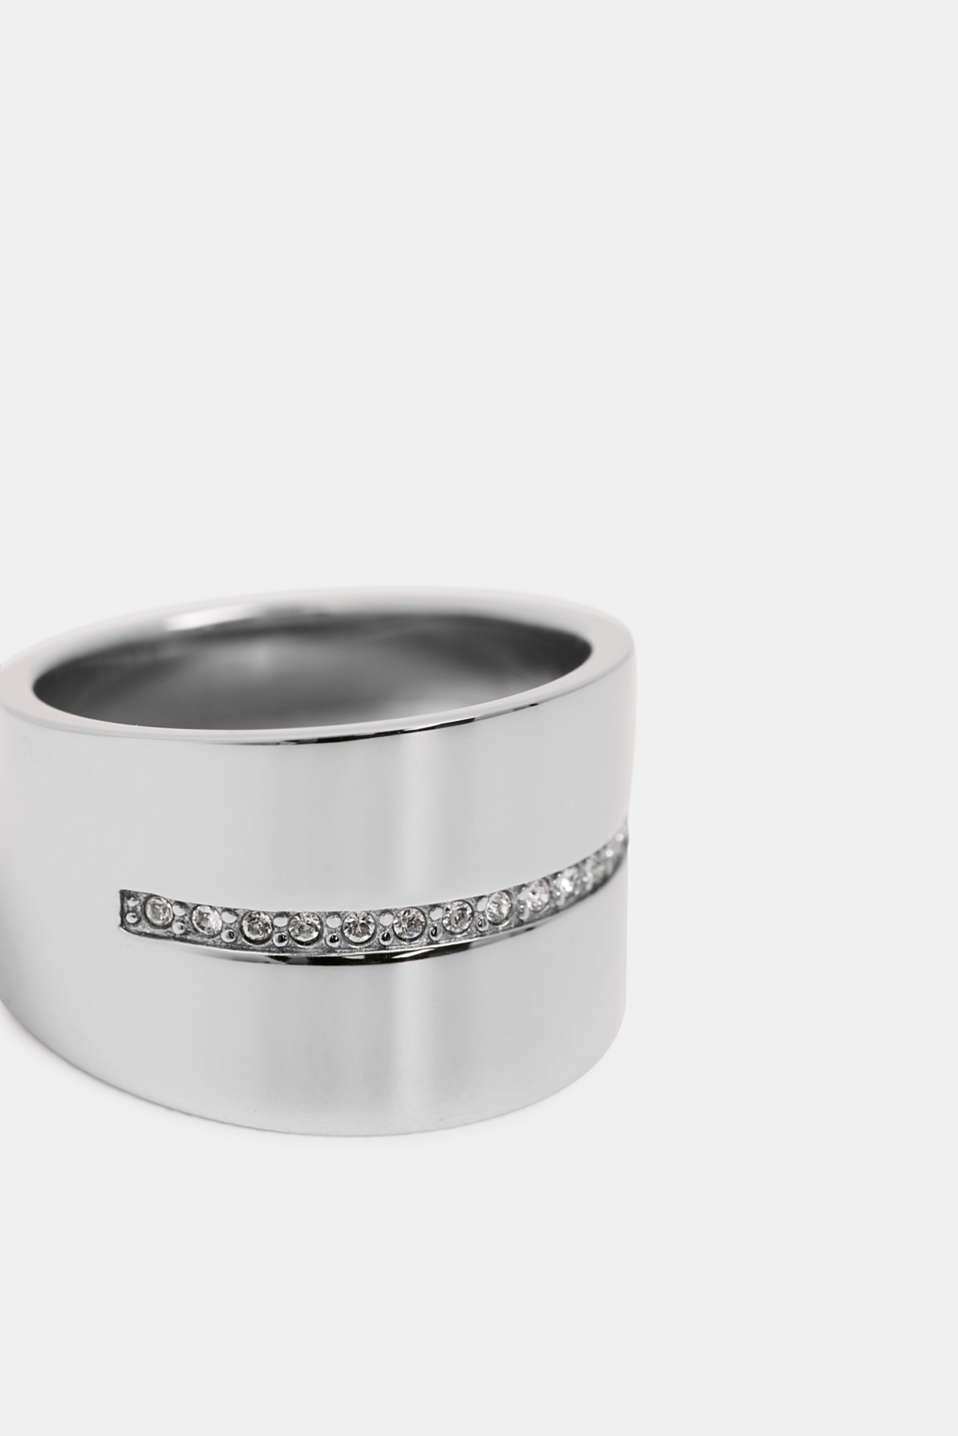 Esprit - Wide stainless-steel ring with a row of zirconia stones